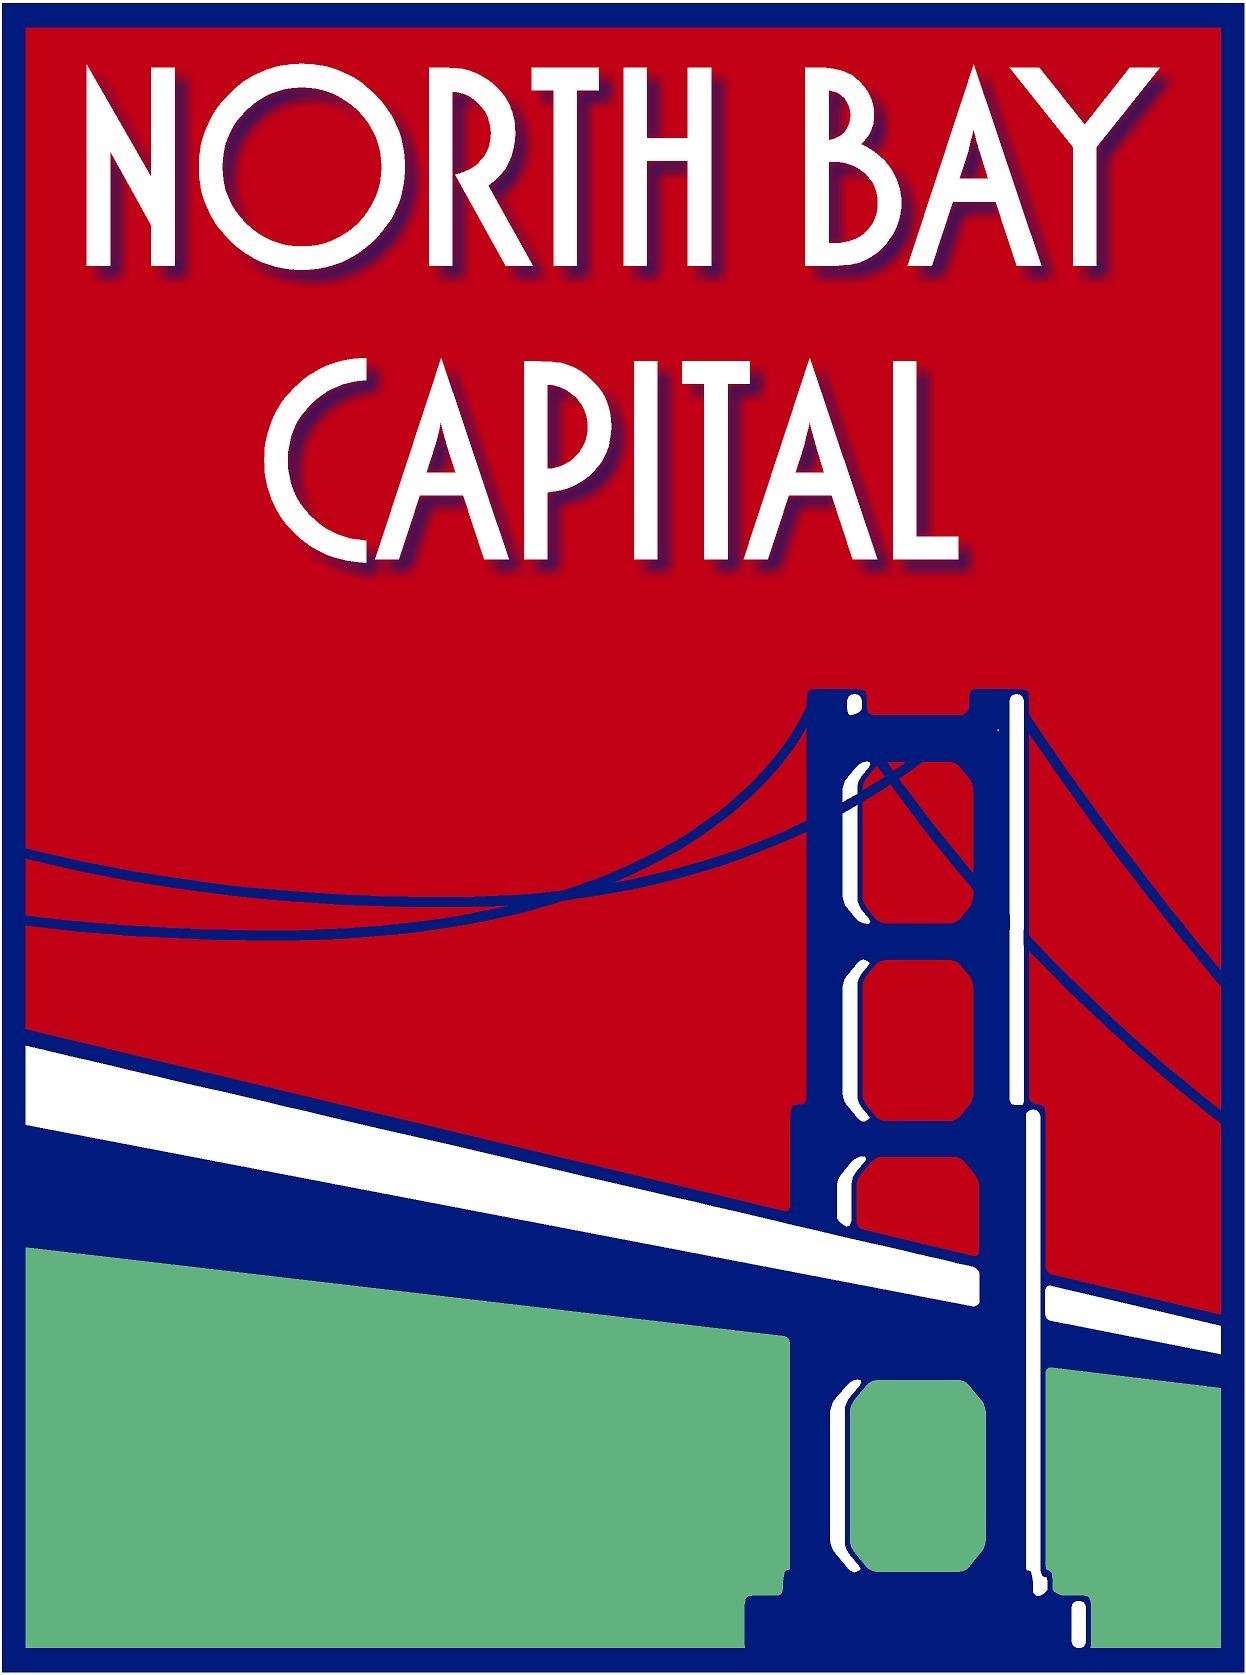 North Bay Capital